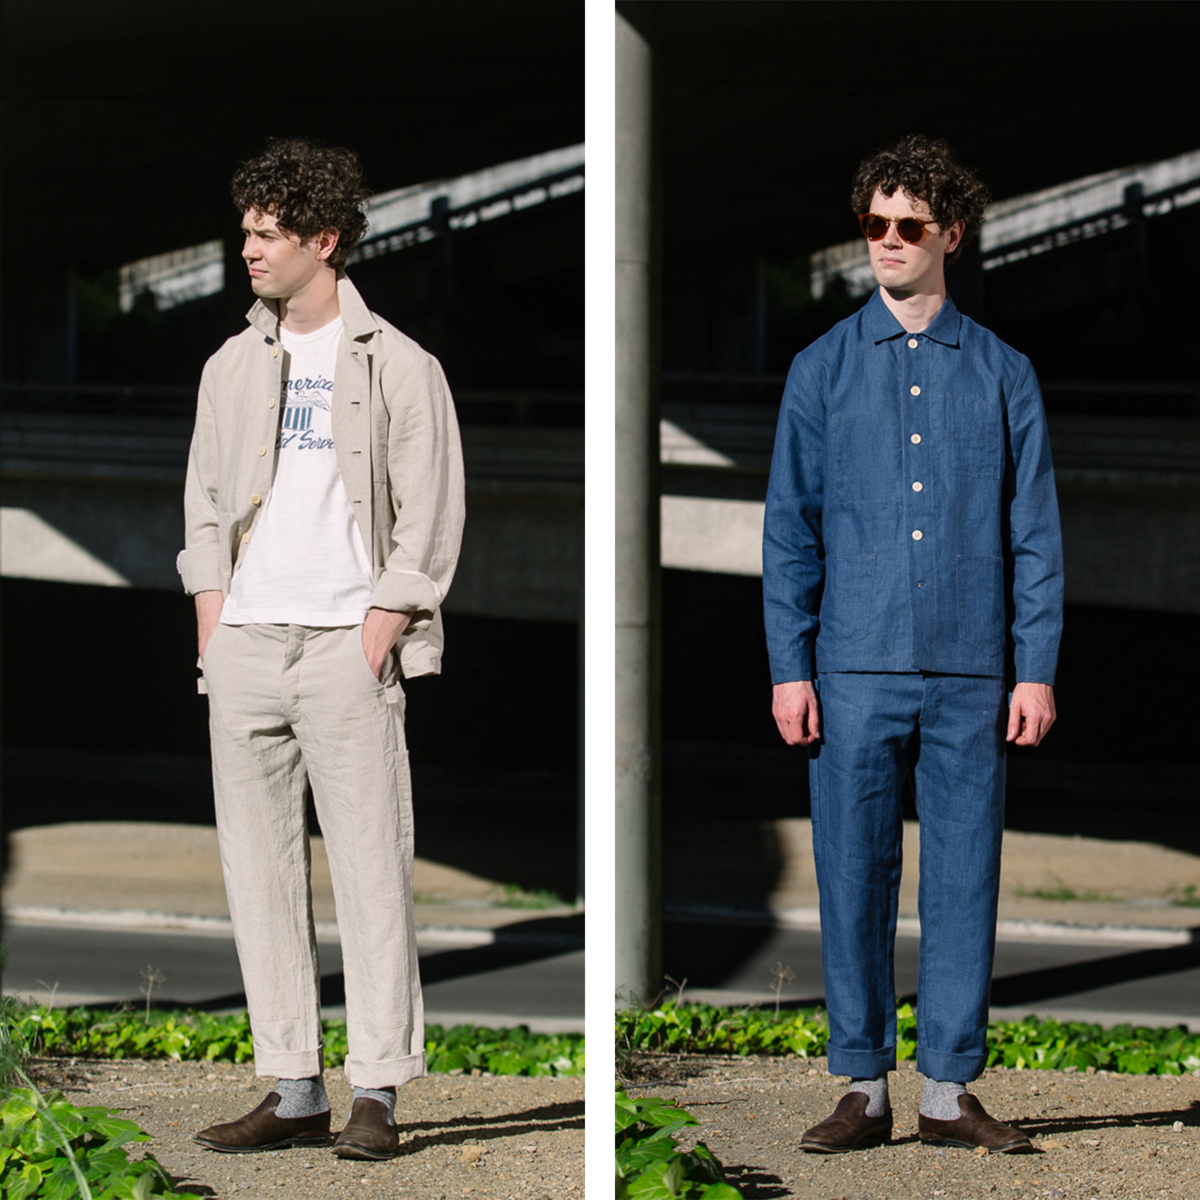 blluemade - S&S x Blluemade Gardening Suit - Both-Onbody-Grid-Email-01.png